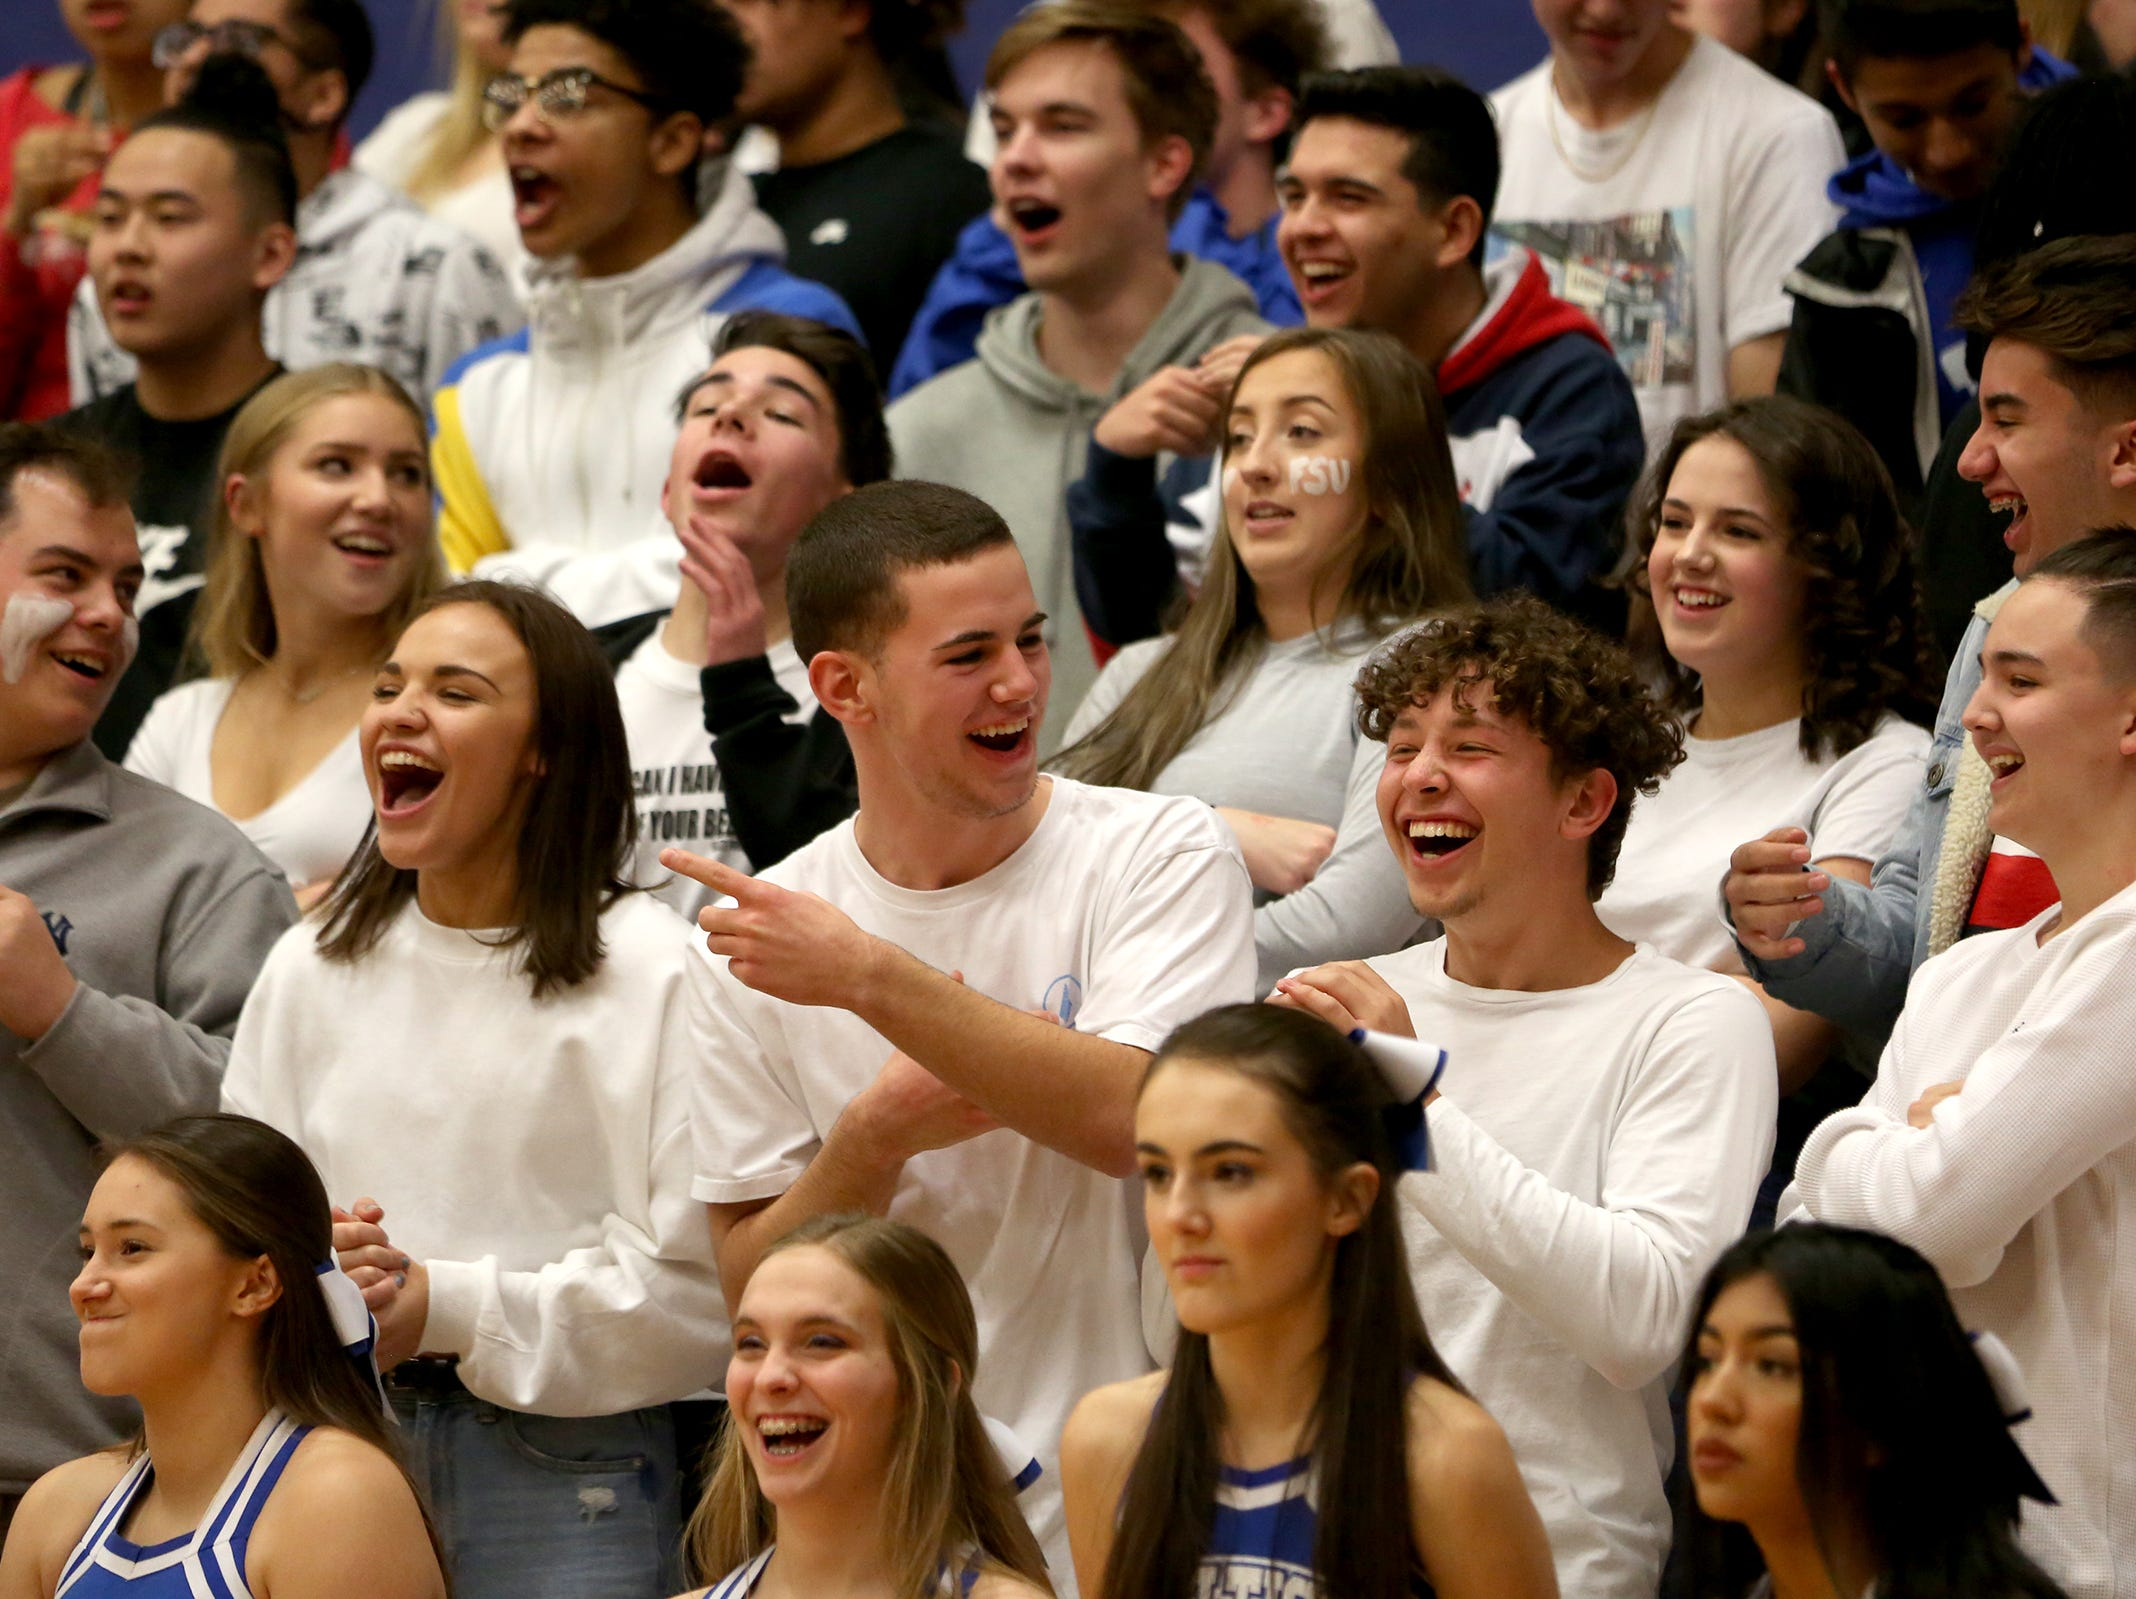 McNary High School students during the McNary boys basketball vs. West Salem game at McNary High School in Keizer on Wednesday, Feb. 6, 2019.